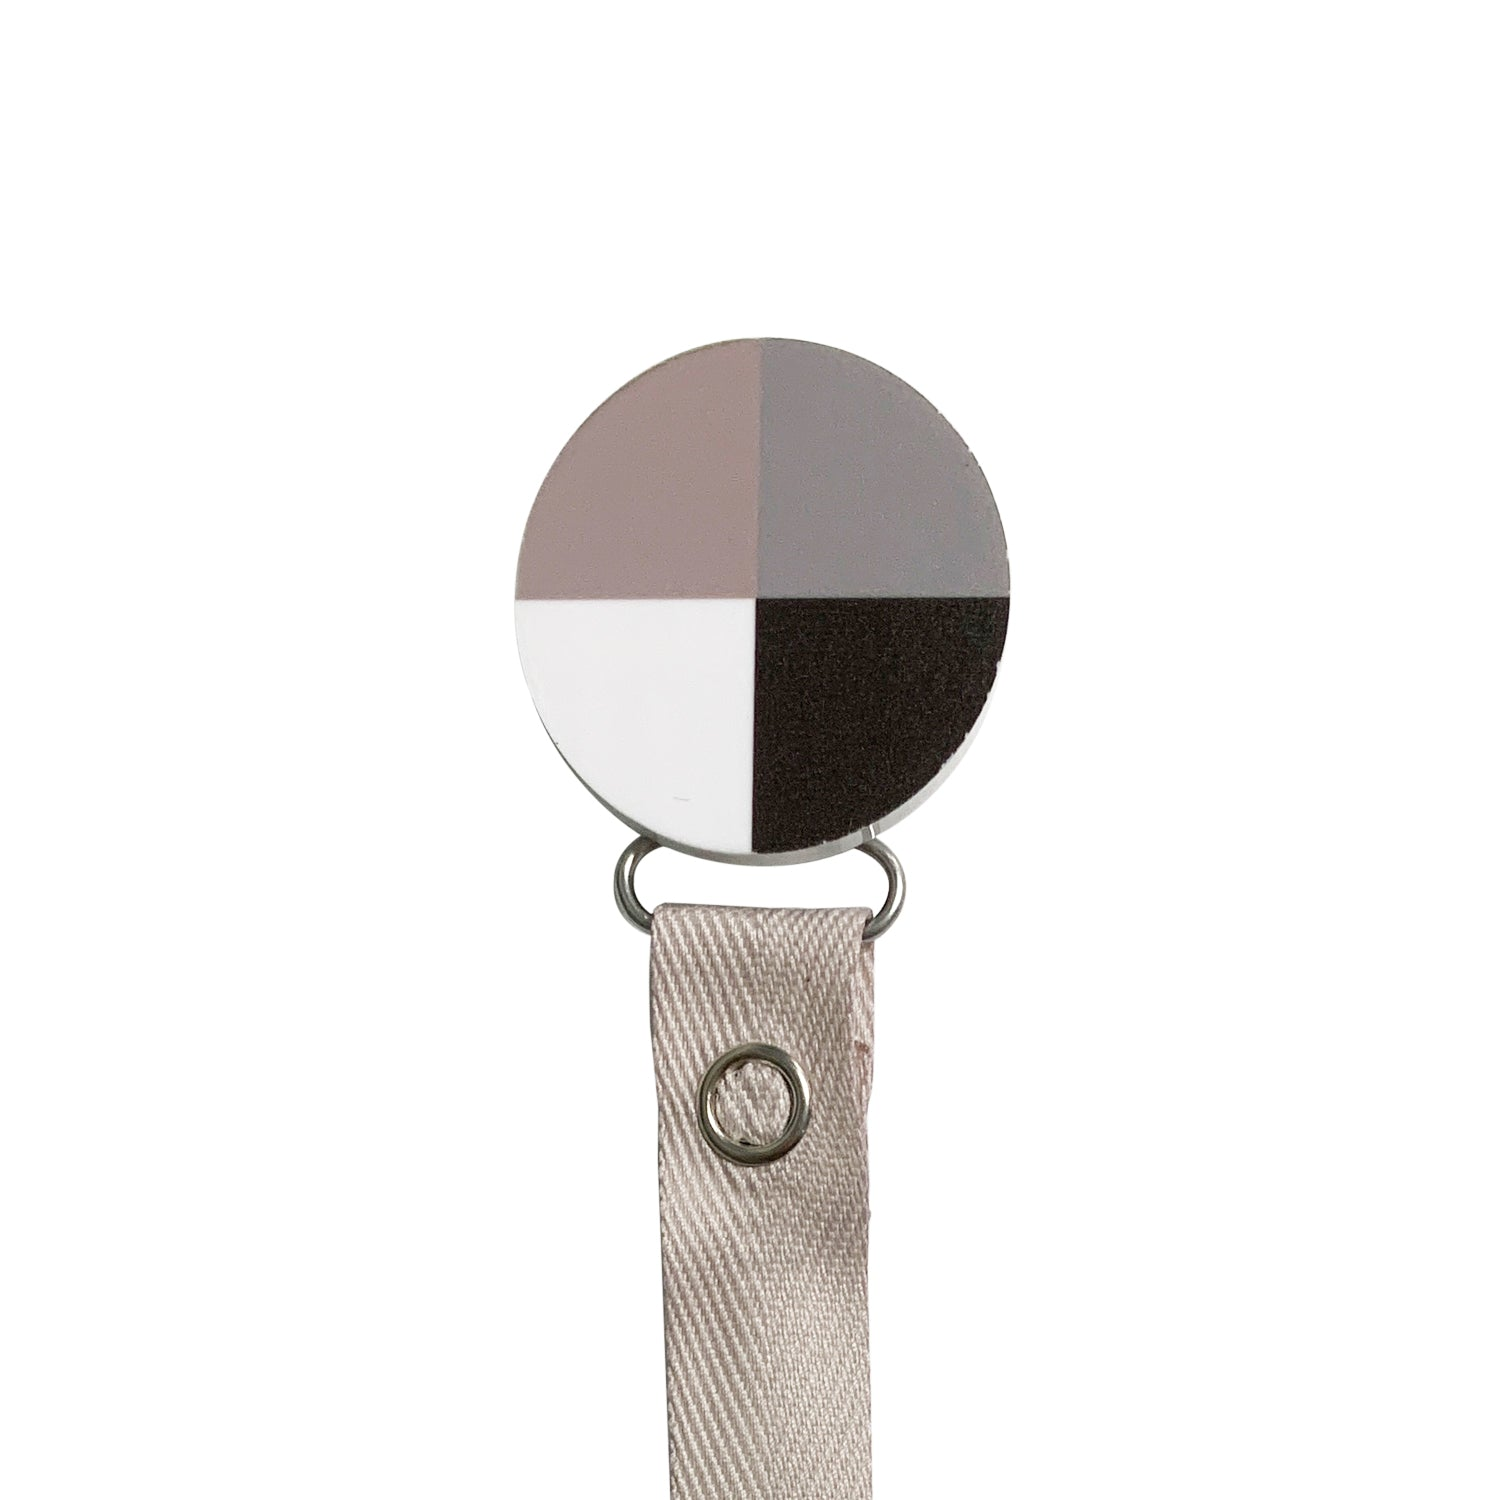 Classy Paci Hues of Grey Black Sand White Colorblock circle pacifier clip